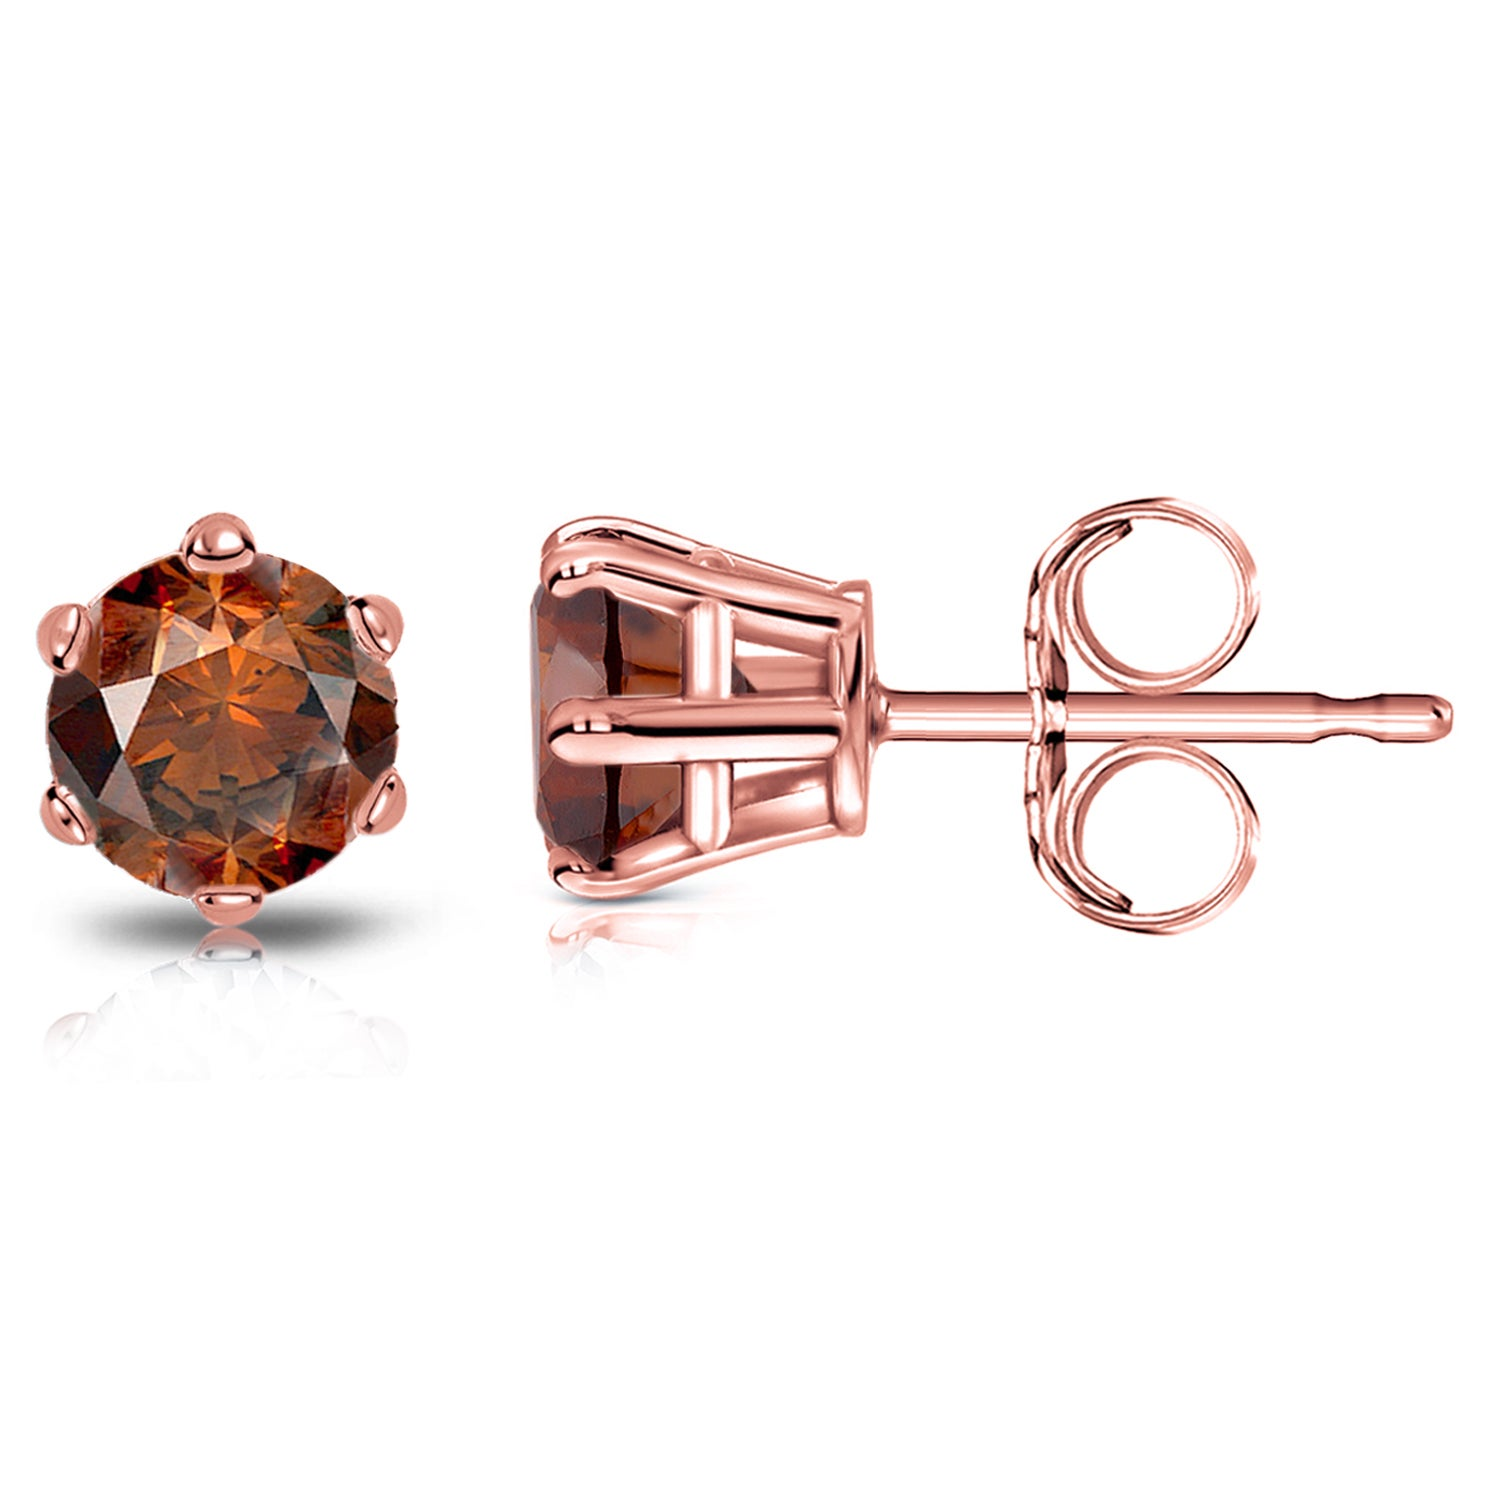 stud products earrings cut hand fetheray earring brown diamond vintage studs blingtastic